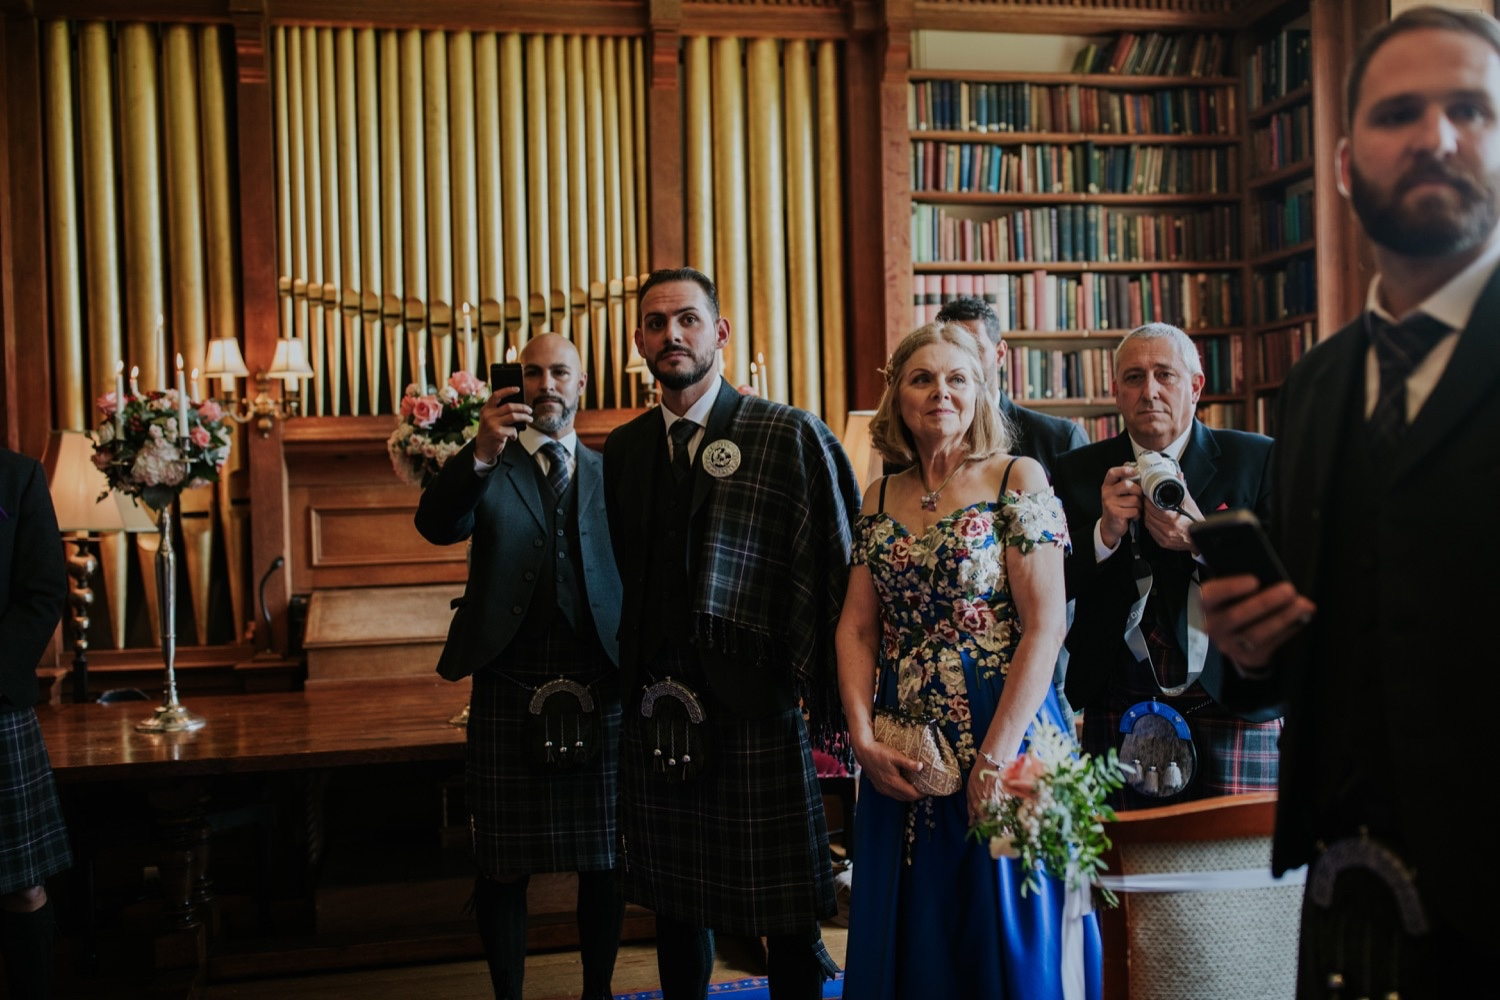 french elopement in scotland photos